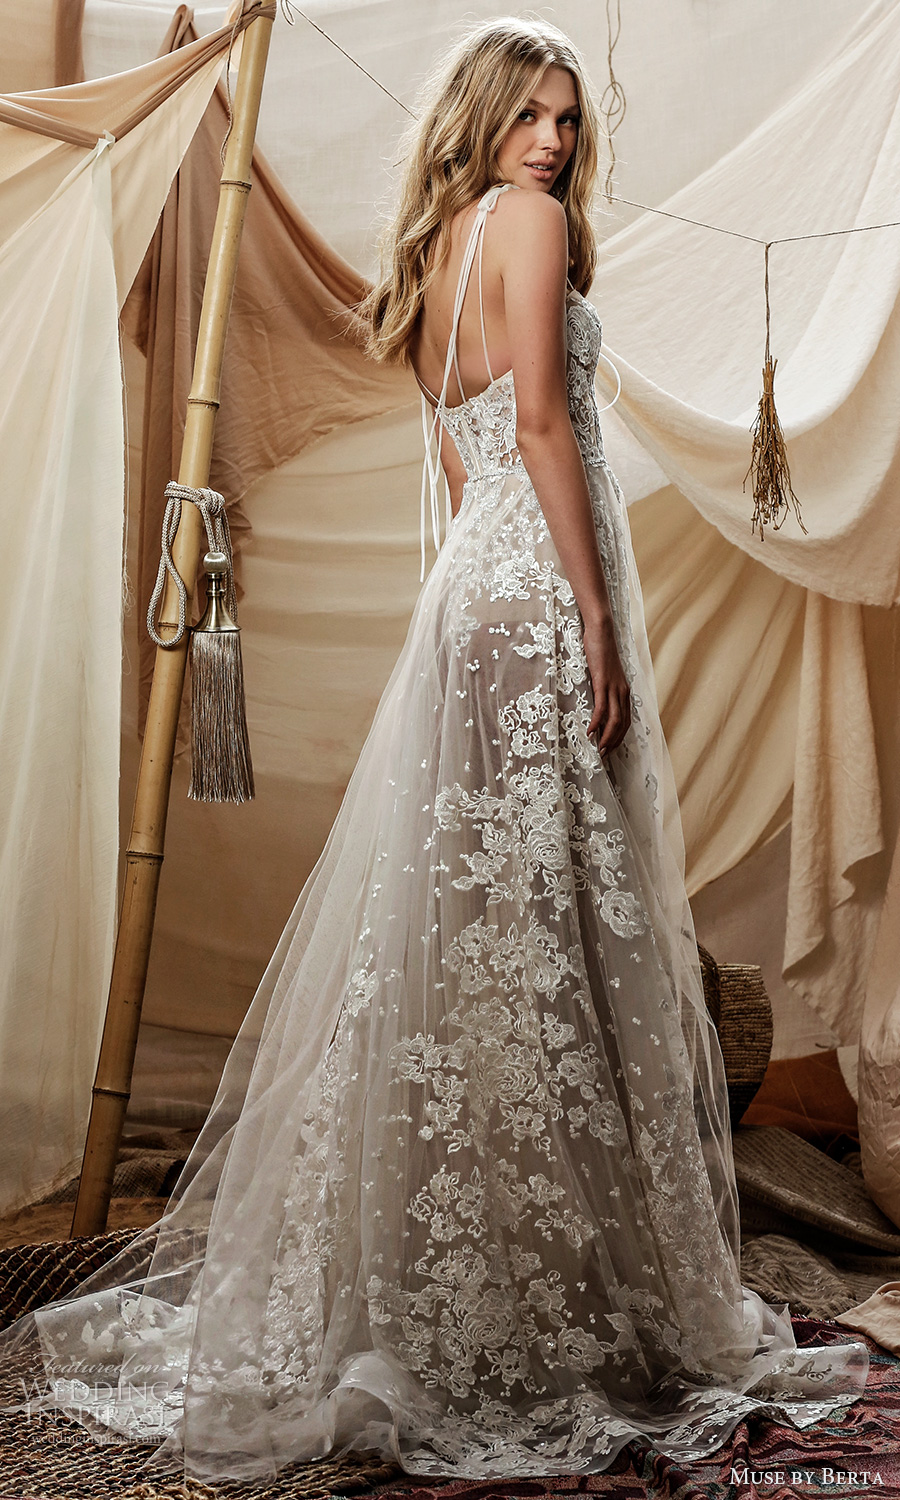 muse by berta spring 2021 bridal sleeveless double straps sweetheart neckline fully embellished lace a line ball gown wedding dress sheer skirt chapel train (15) bv